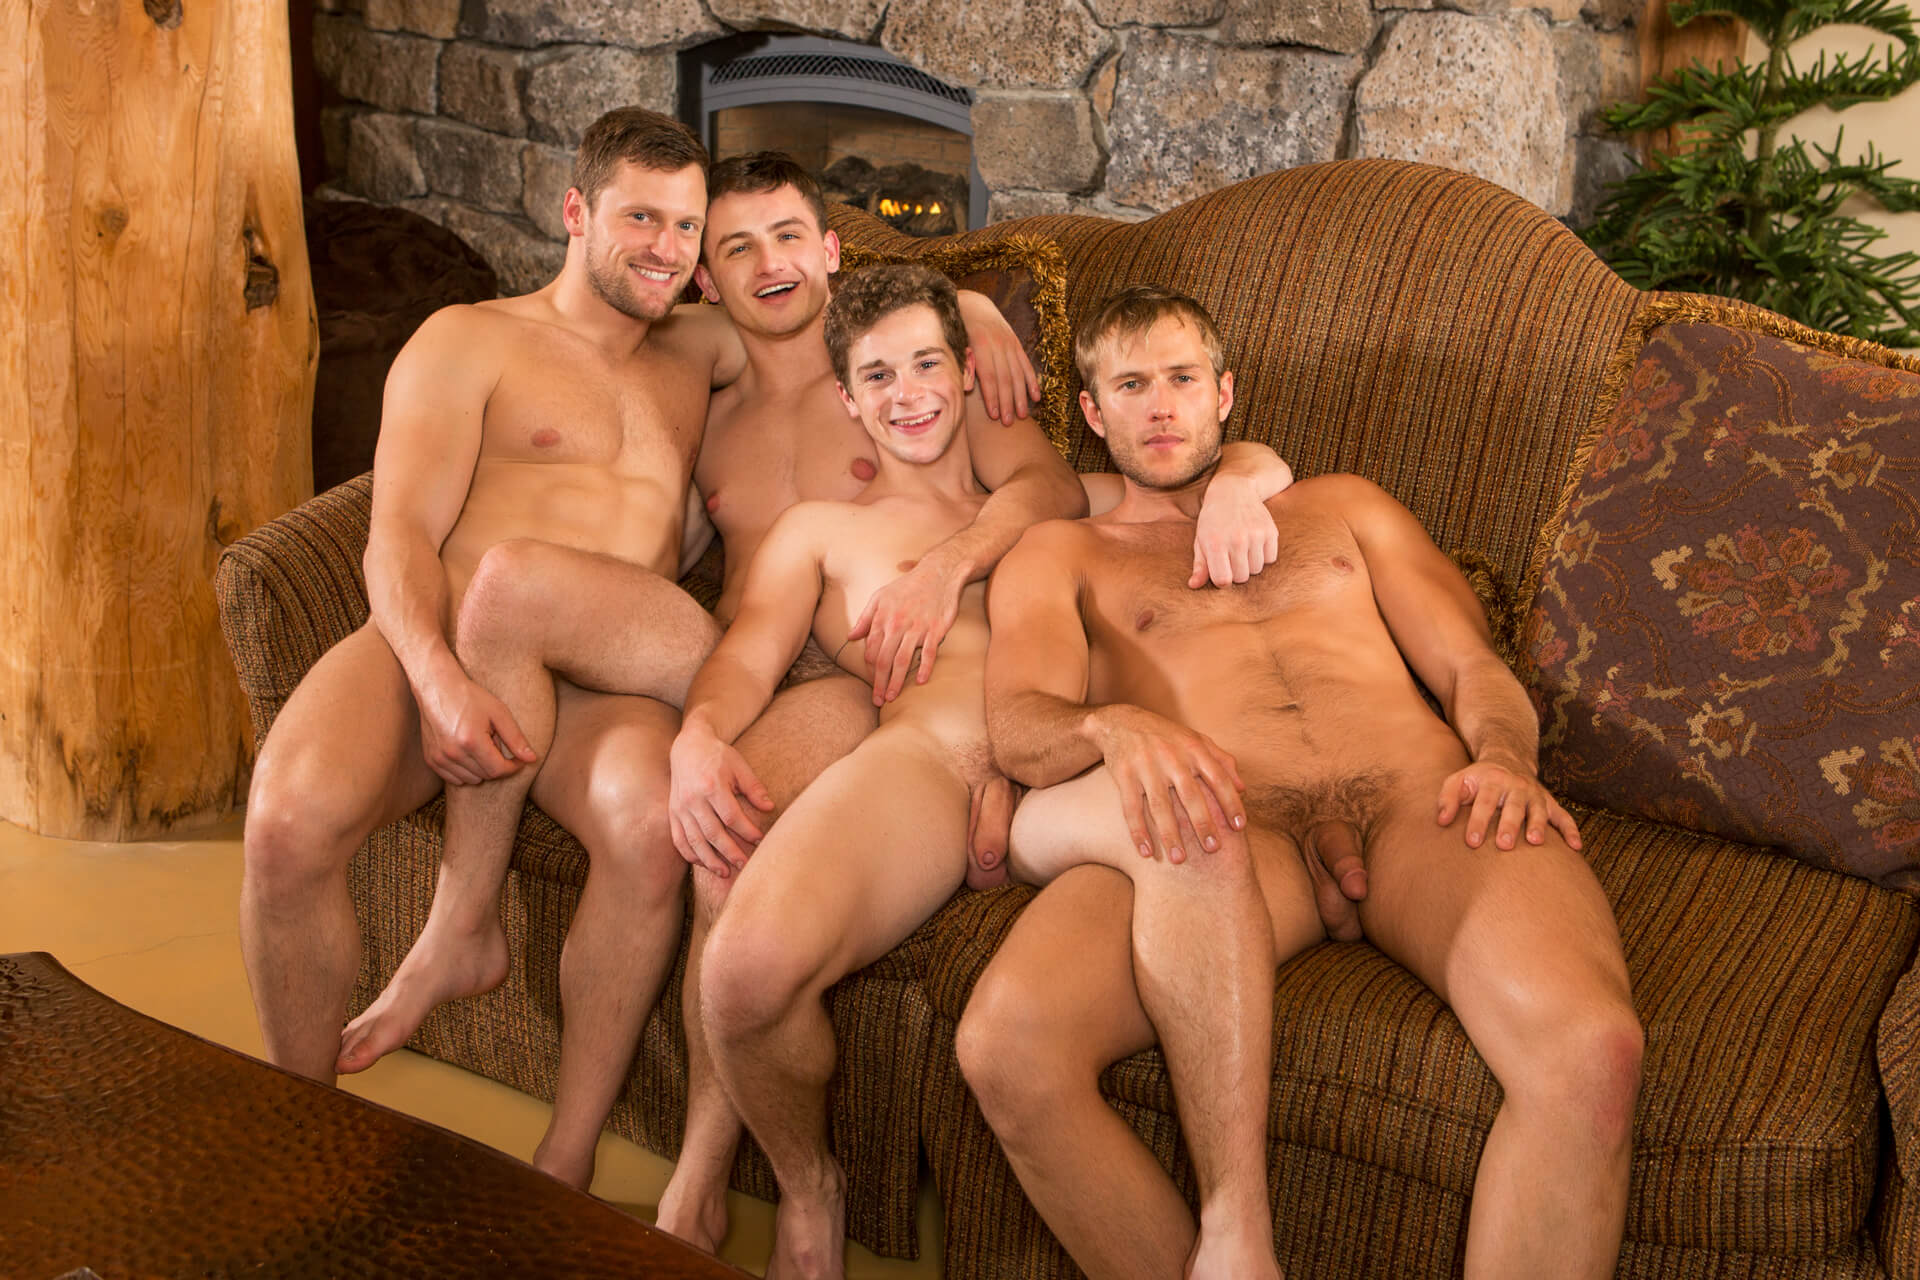 sean cody winter getaway day 8 bareback foursome atticus blake brendan robbie gay porn blog image 20